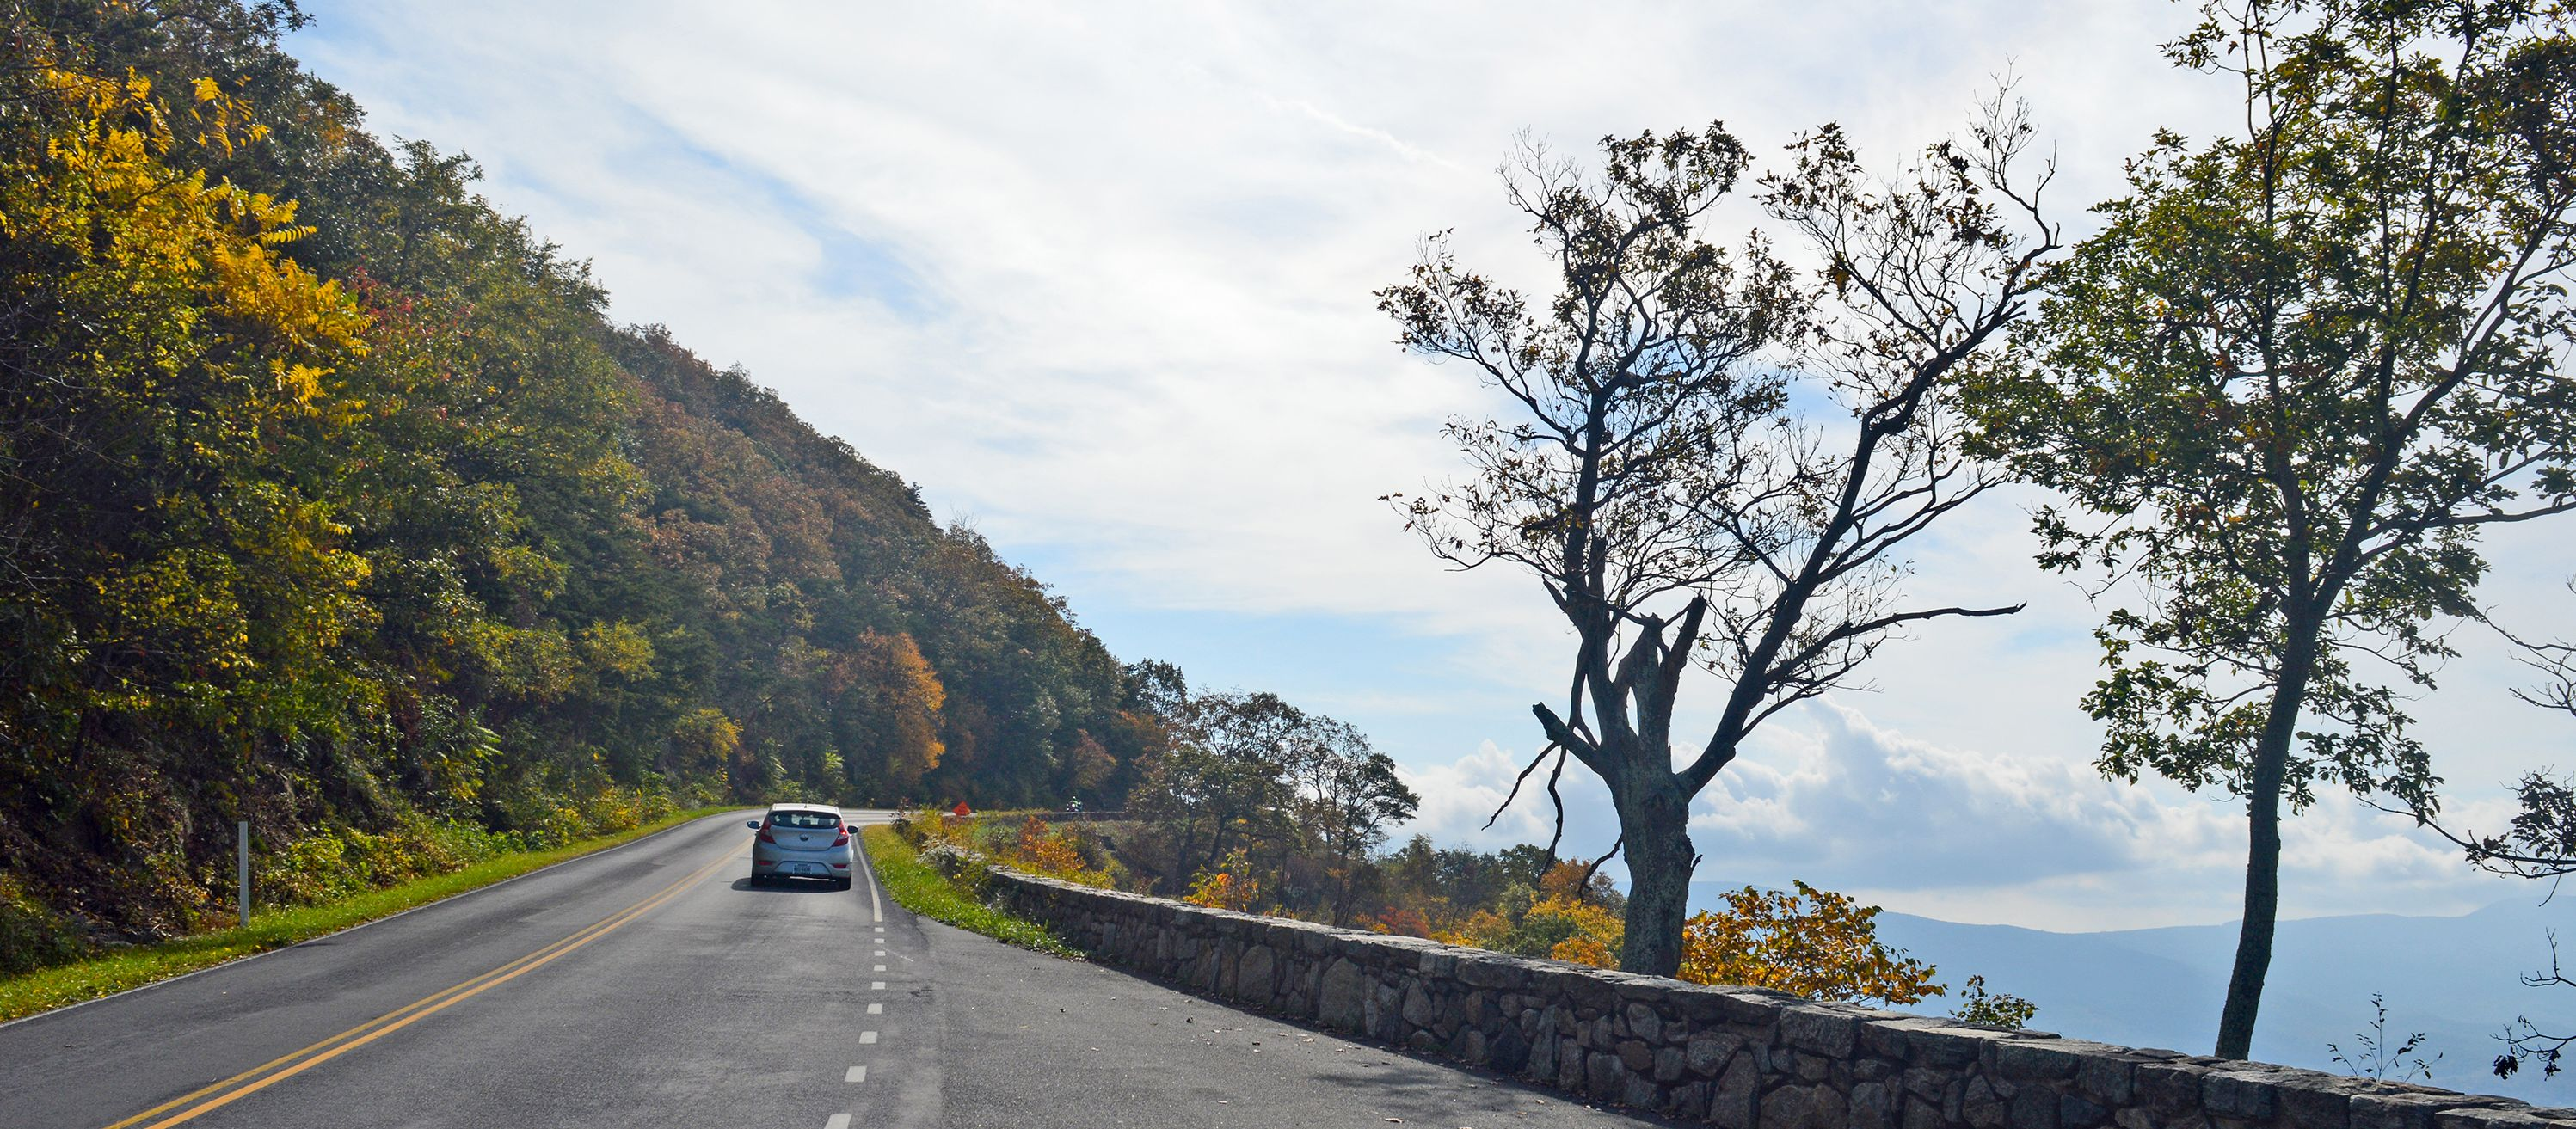 Unterwegs im Shenandoah Nationalpark